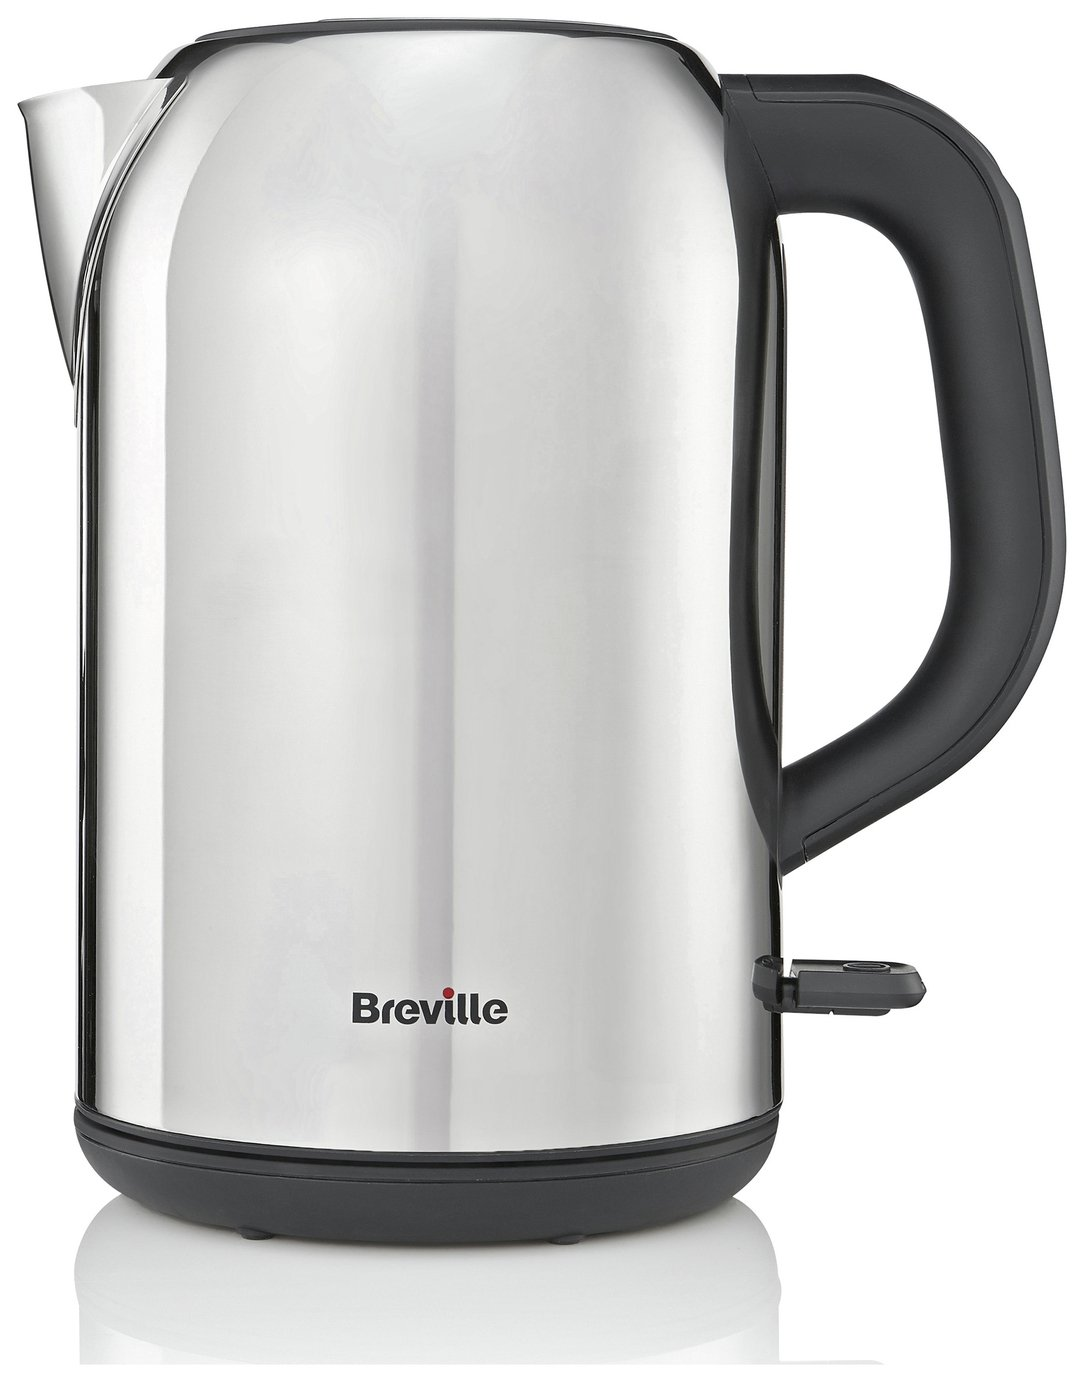 Breville Jug Kettle - Polished Stainless Steel